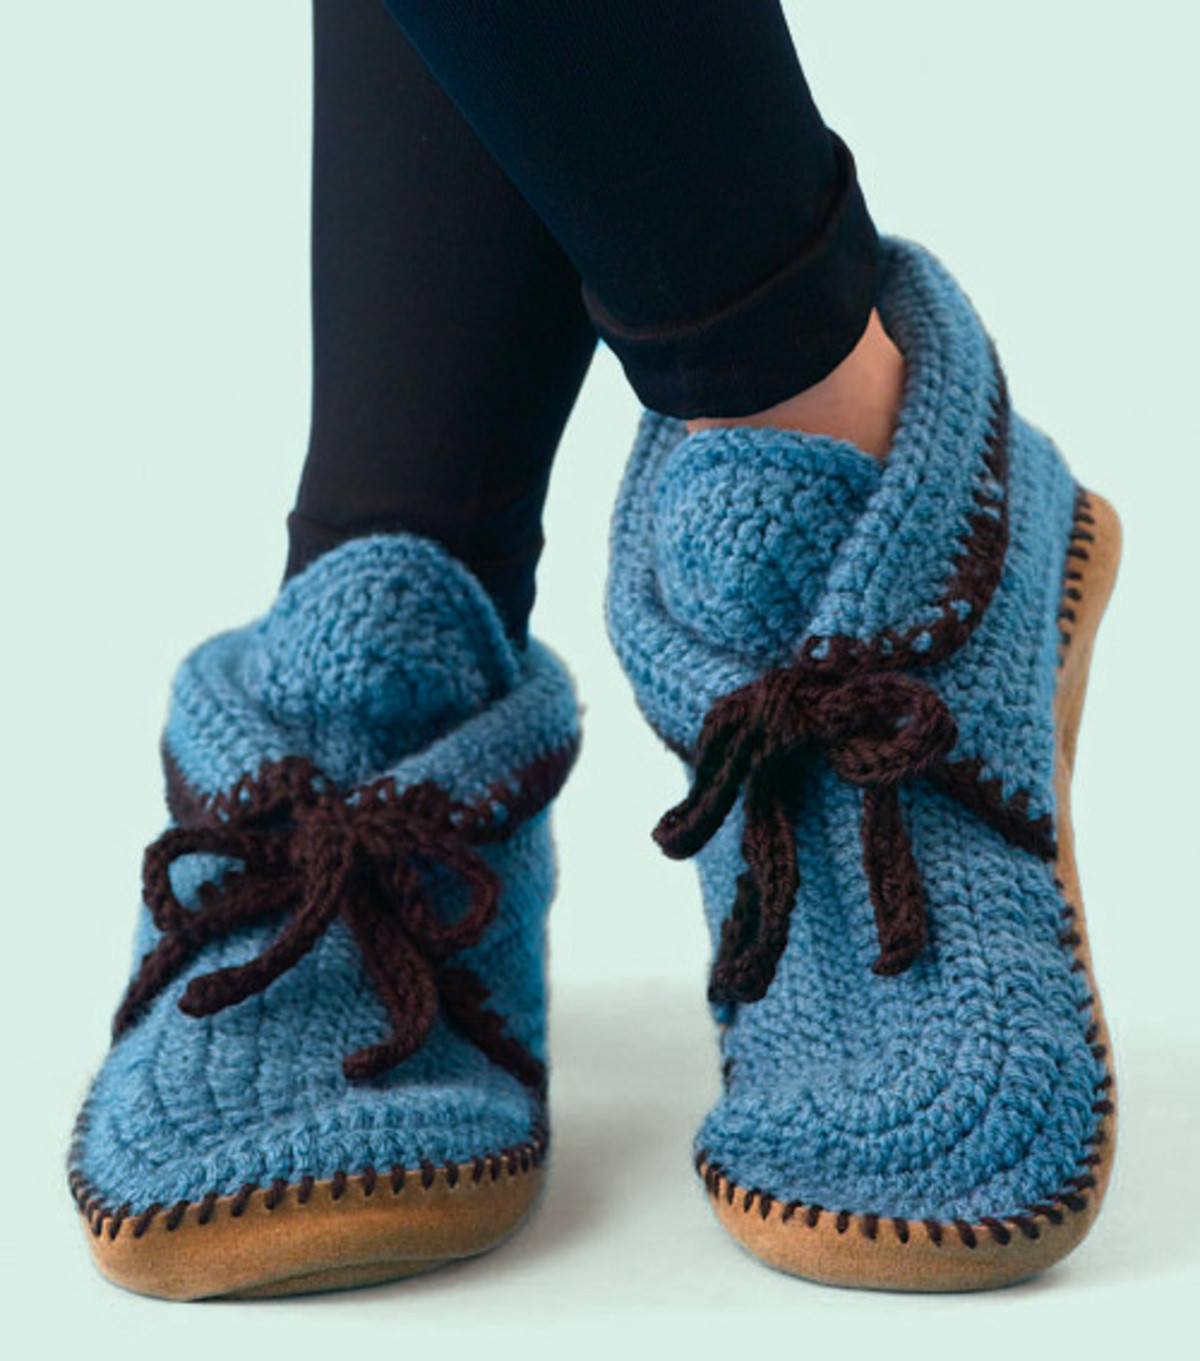 Free Slipper Patterns Best Of Keep Your Feet Warm with these Stylish Free Crochet Of Luxury 50 Ideas Free Slipper Patterns